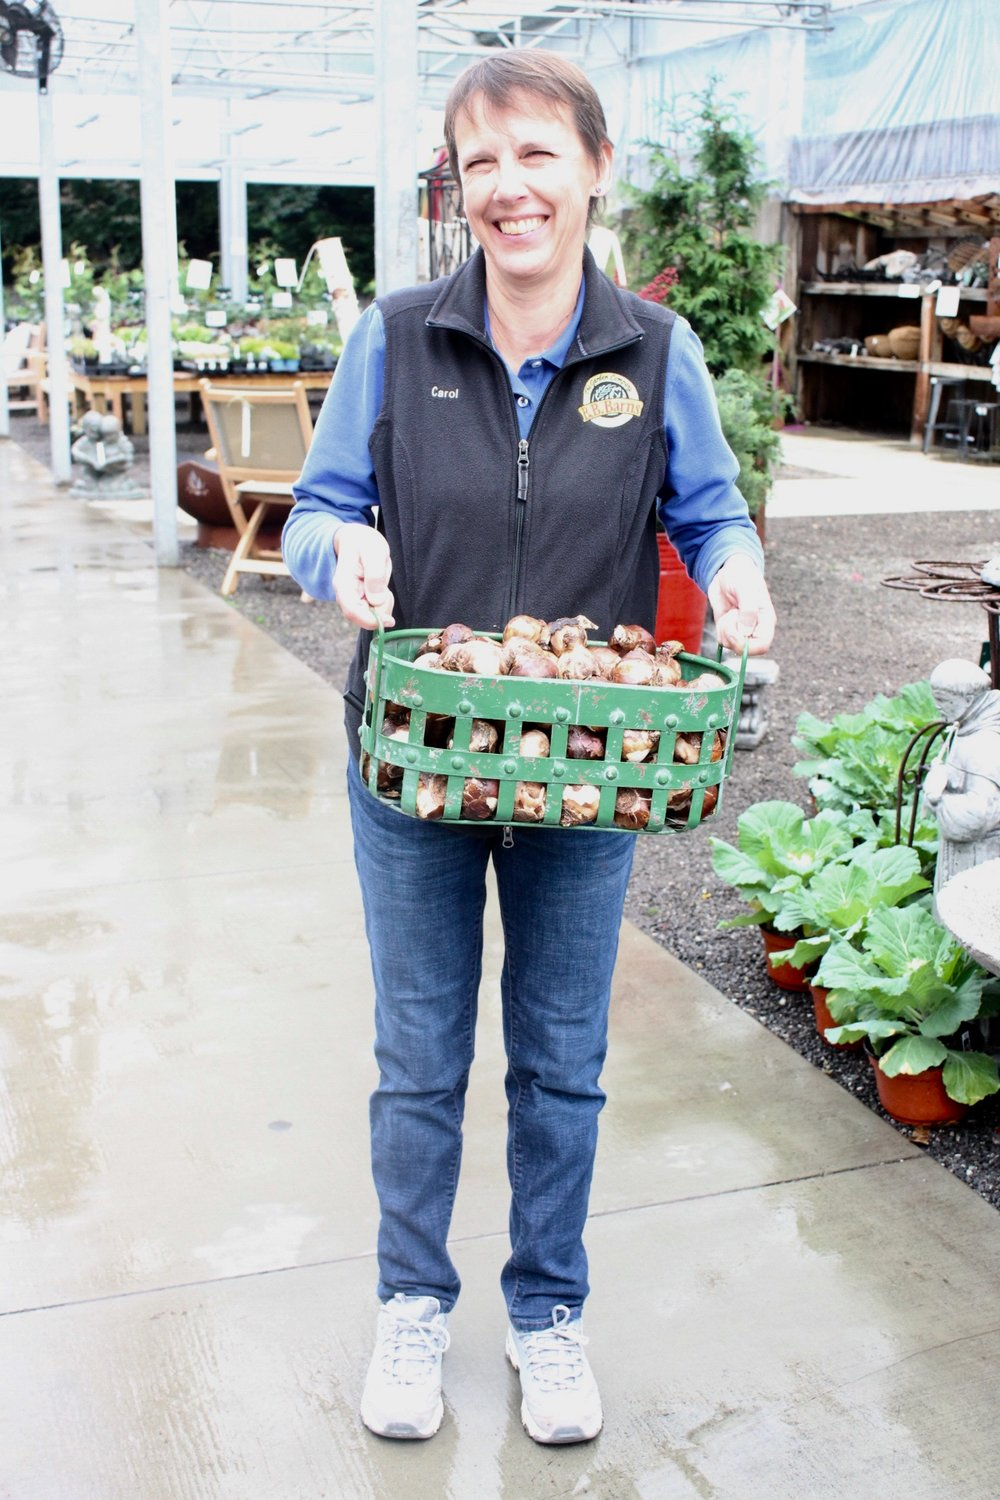 Carol Dwyer, who does a great job working in our annuals department, is happy to show you how to get your bulbs started.